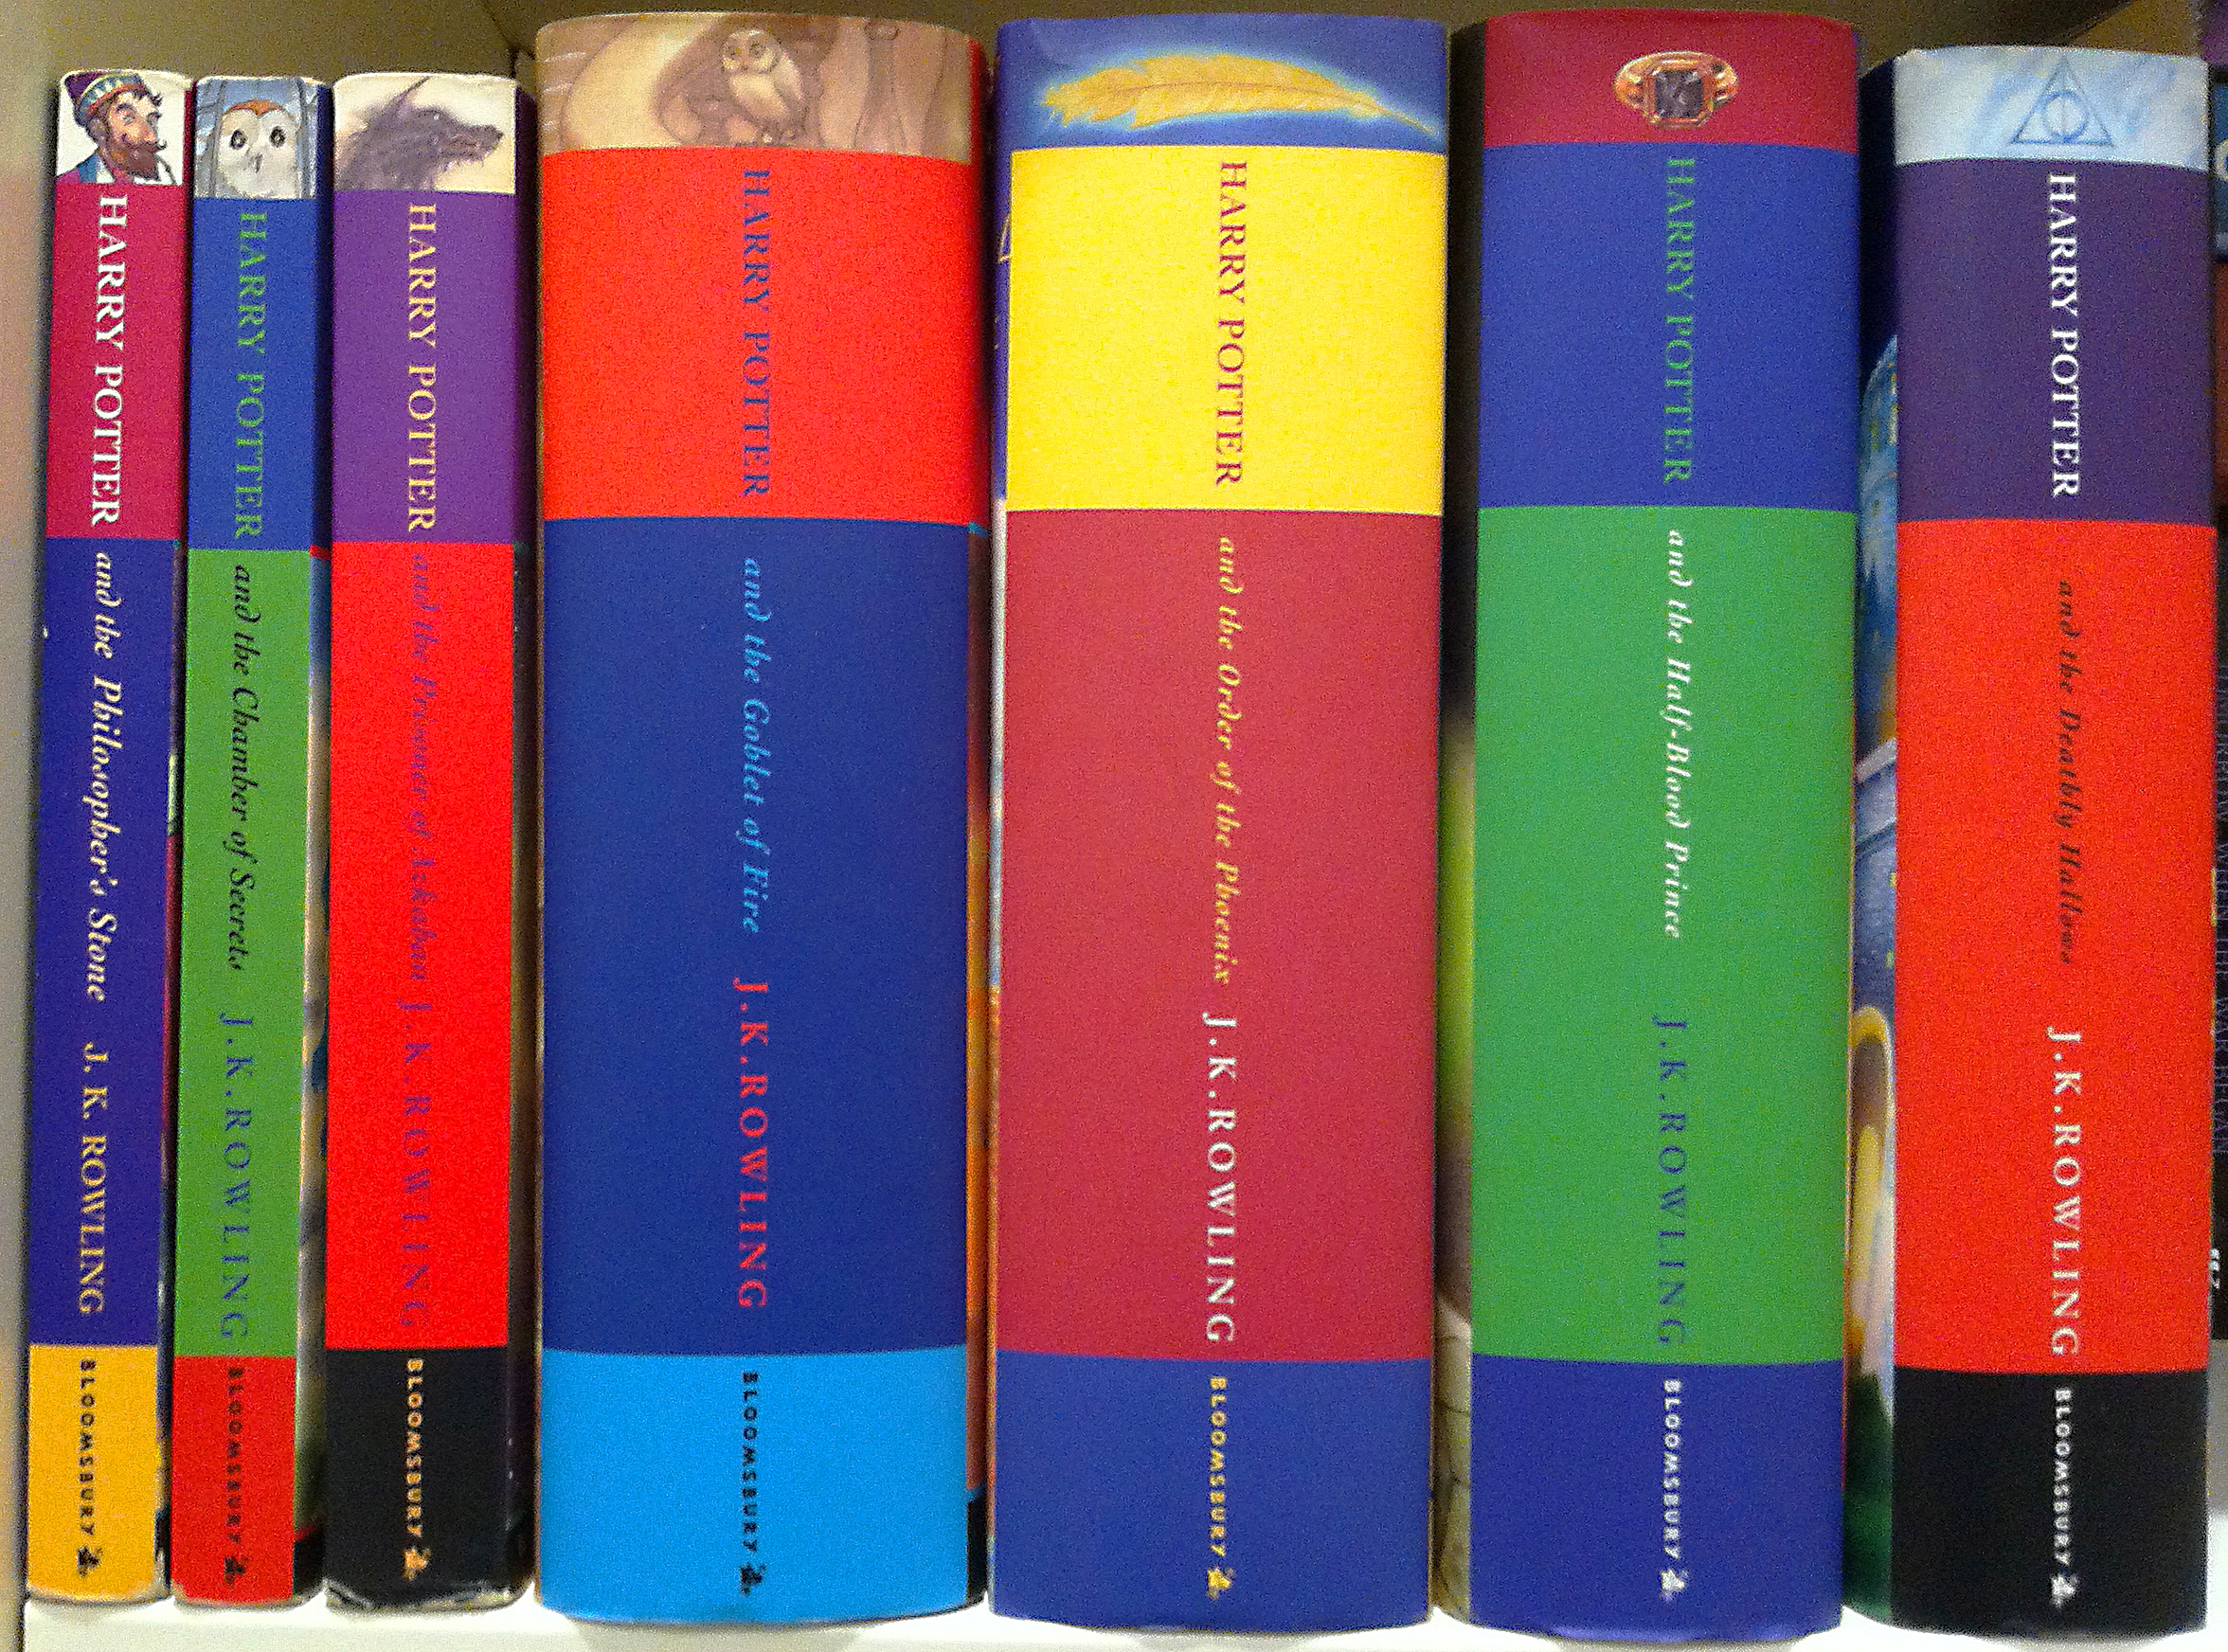 Harry Potter Book Word Count : Harry potter facts tim flanagan